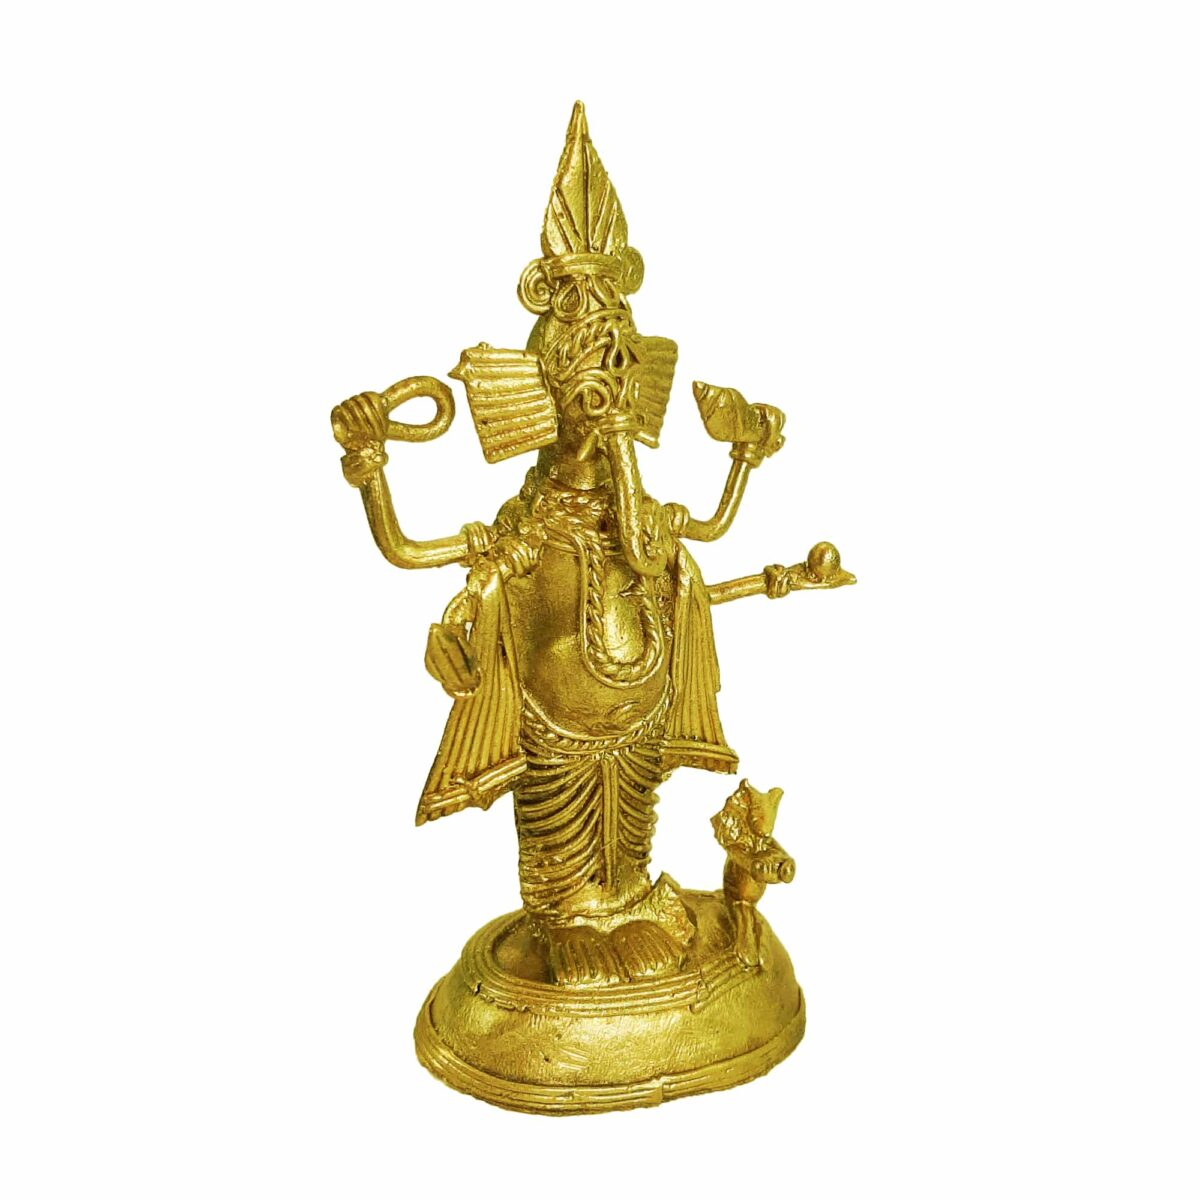 Traditional Beautiful Handcrafted Dokra Ganesh Statue For Home Decor And Office